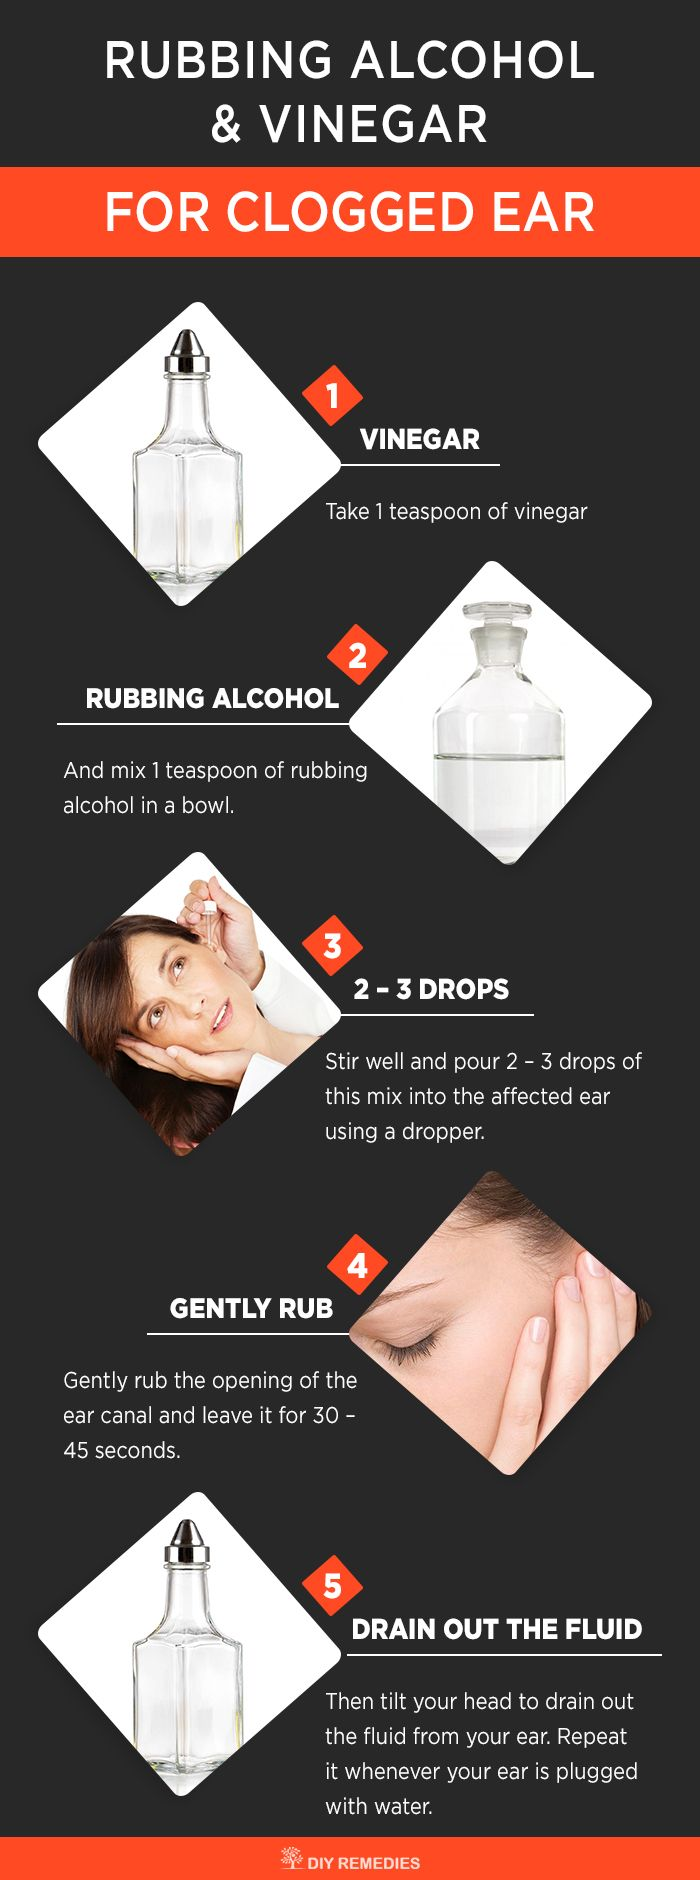 Best Ways to Remove Water from Clogged Ear   Method – 2: (Rubbing Alcohol and Vinegar)    This process is an age old remedy that used to clear the fluids out from the ear. Vinegar has antibacterial and antiseptic properties that kill germs in the ear and removes the trapped water that caused due to earwax buildup. Rubbing alcohol dries out the water from inside the ear.  #waterinsidetheear